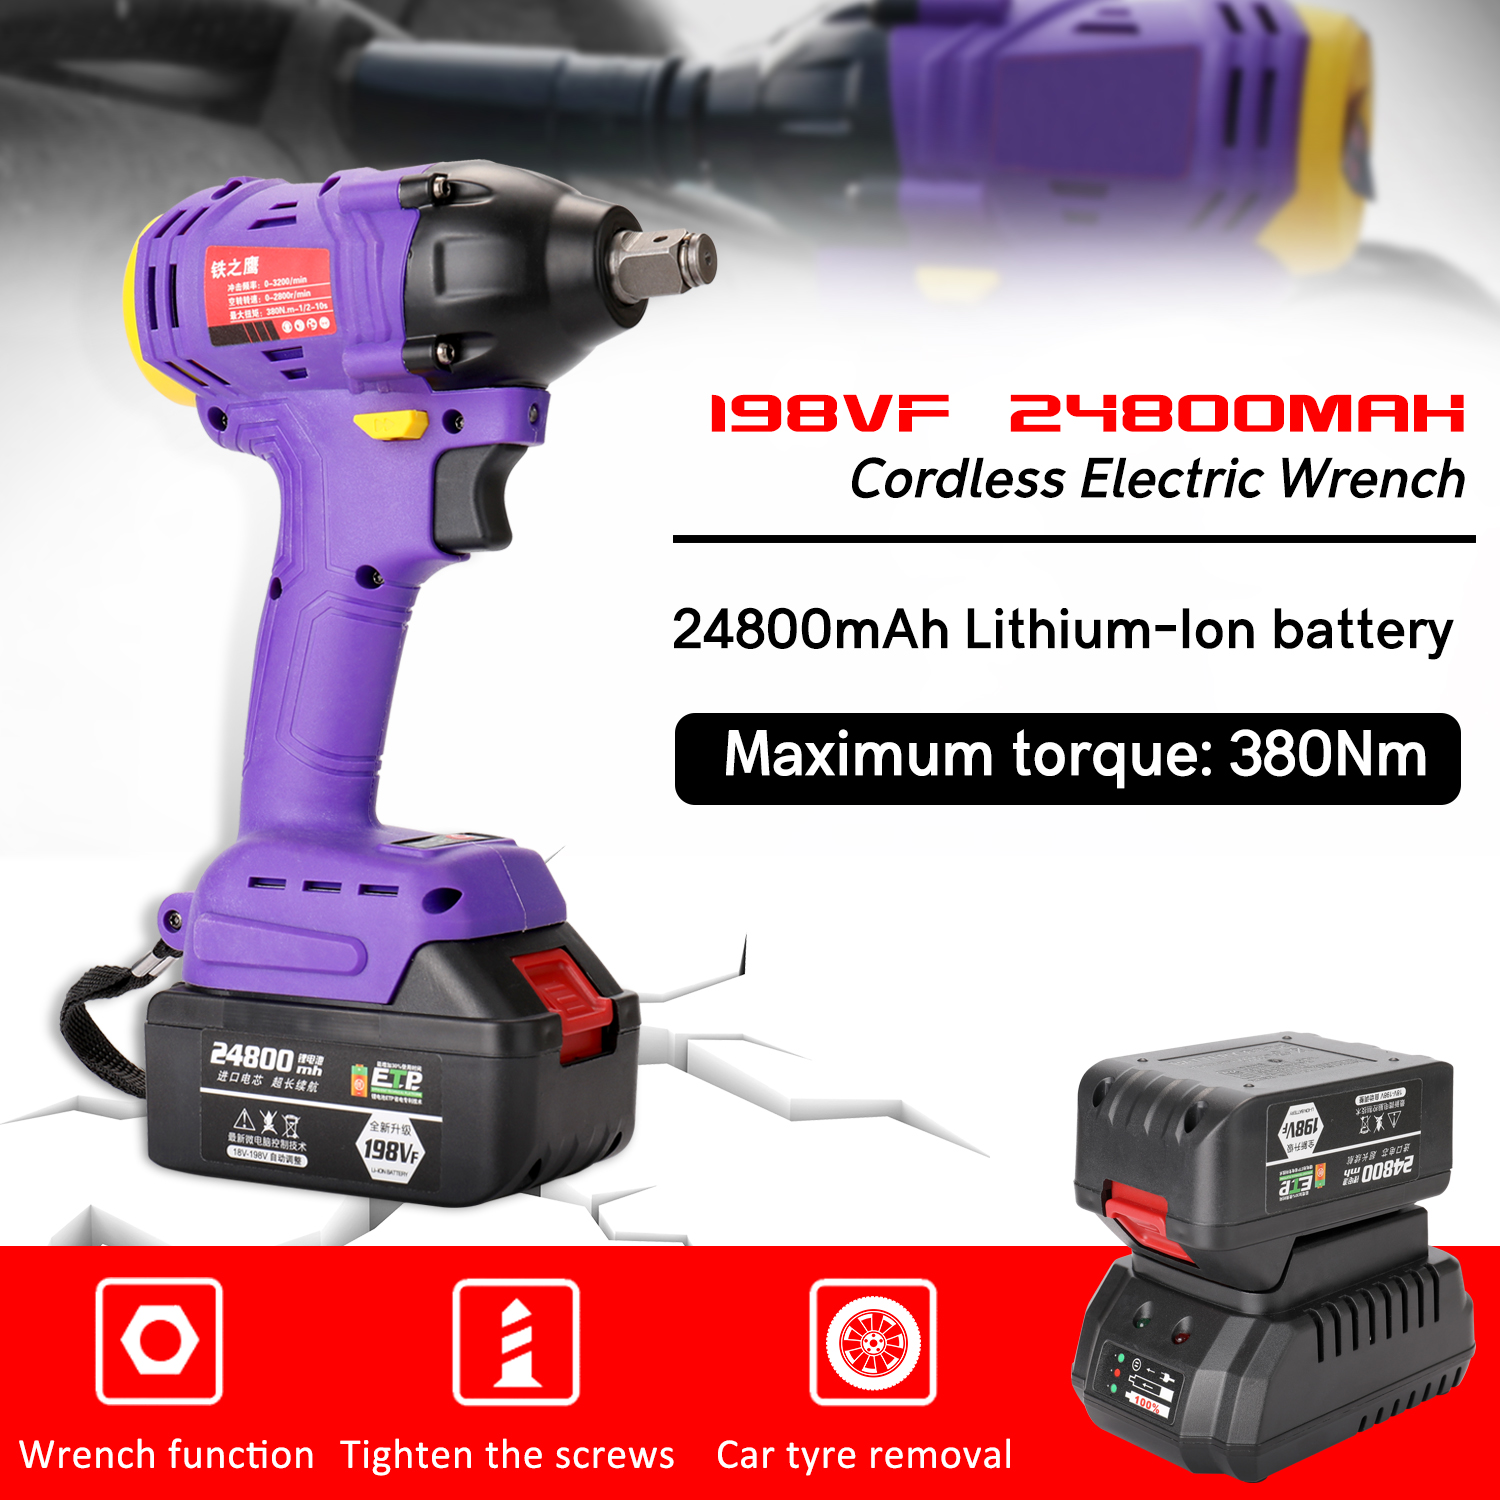 2 in 1 24800mAh Lithium Battery Cordless Electric Brushless Impact Wrench 380Nm High Torque Rechargeable Power Driver Wrench|Electric Wrenches| |  - title=